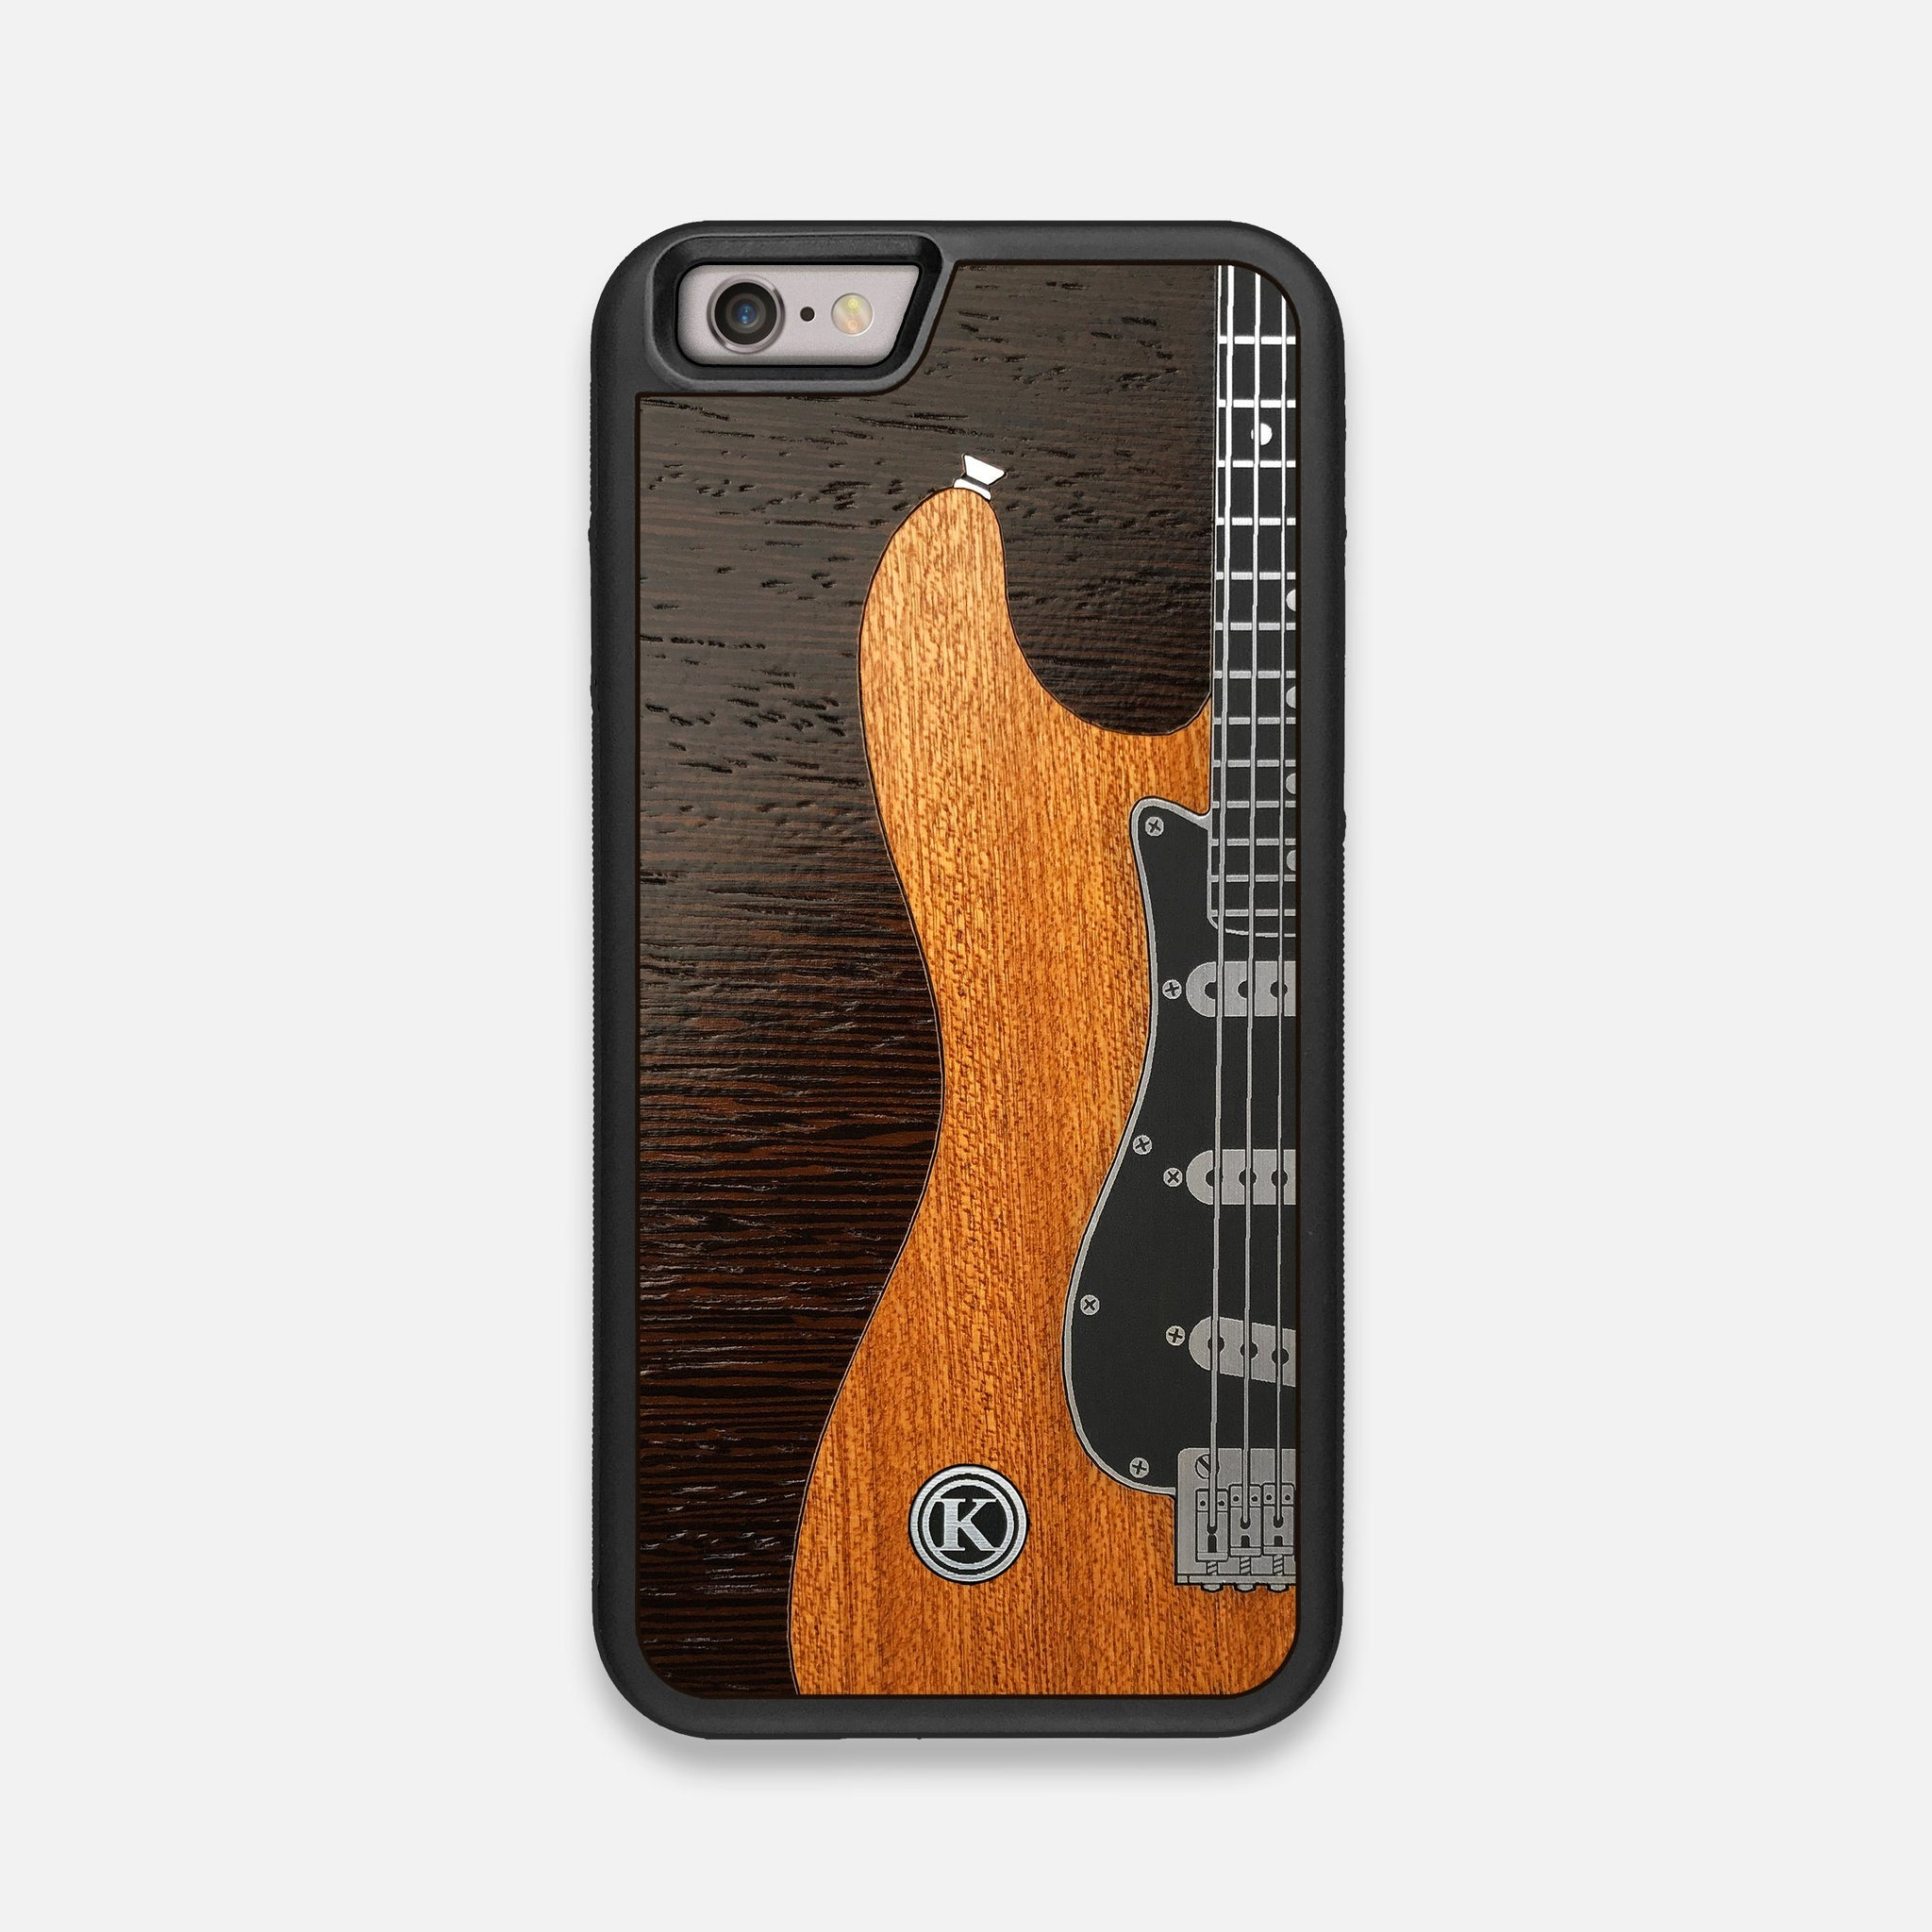 Front view of the Reverb Guitar Wood and Metallic  iPhone 6 Case by Keyway Designs